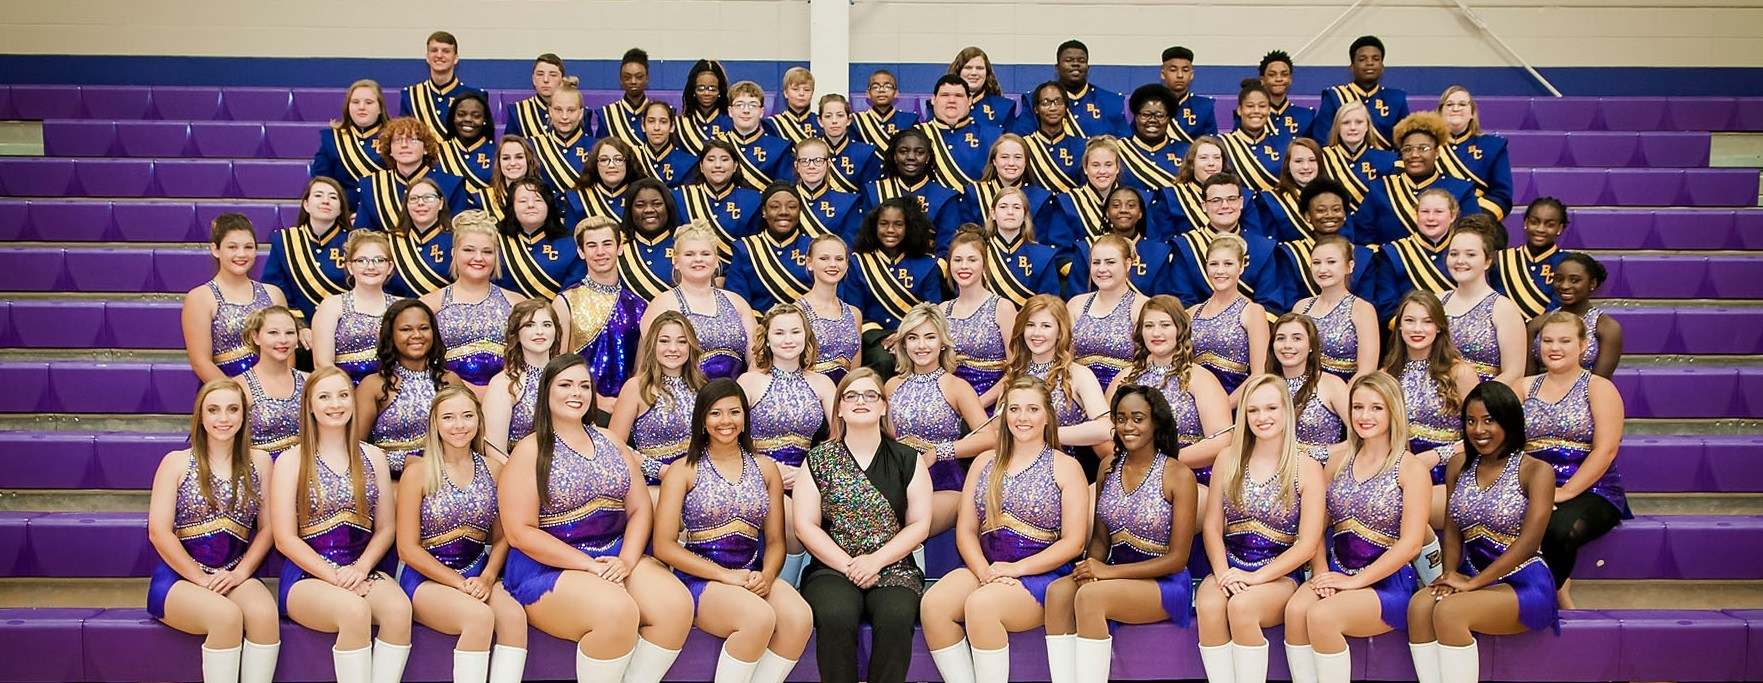 Bibb County High School Purple Pride Marching Band dressed out on bleachers